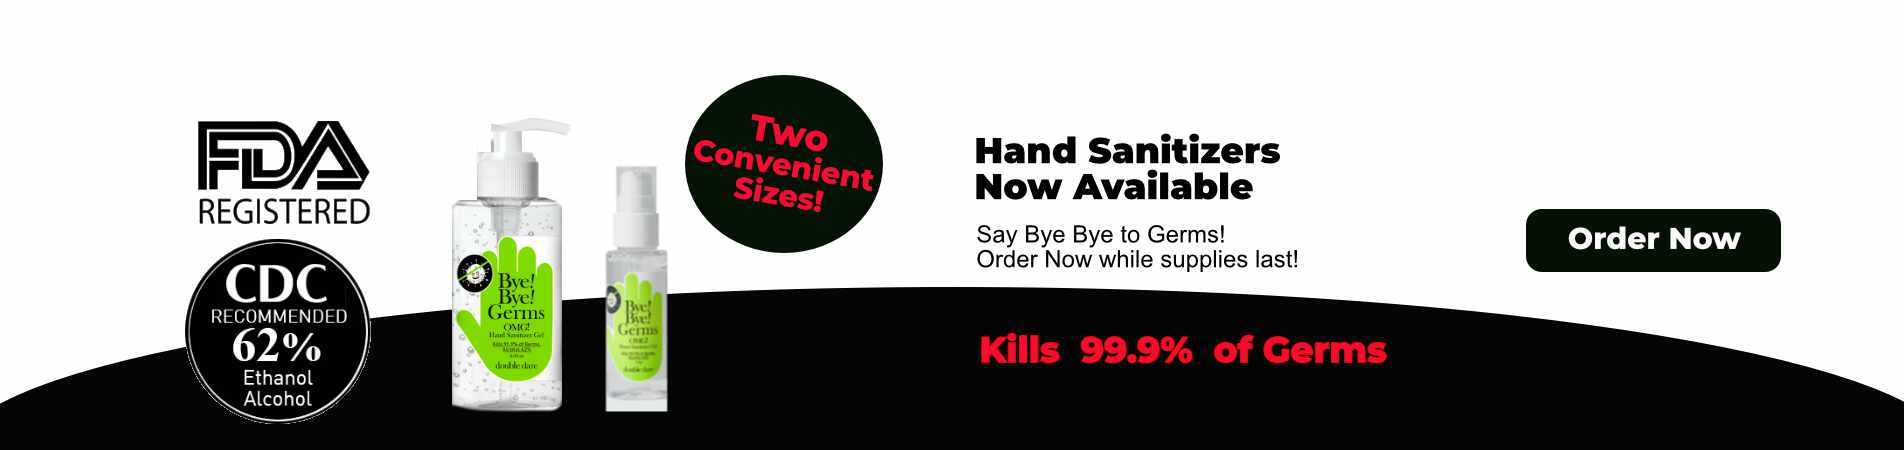 Bye Bye Germs Hand Sanitizers